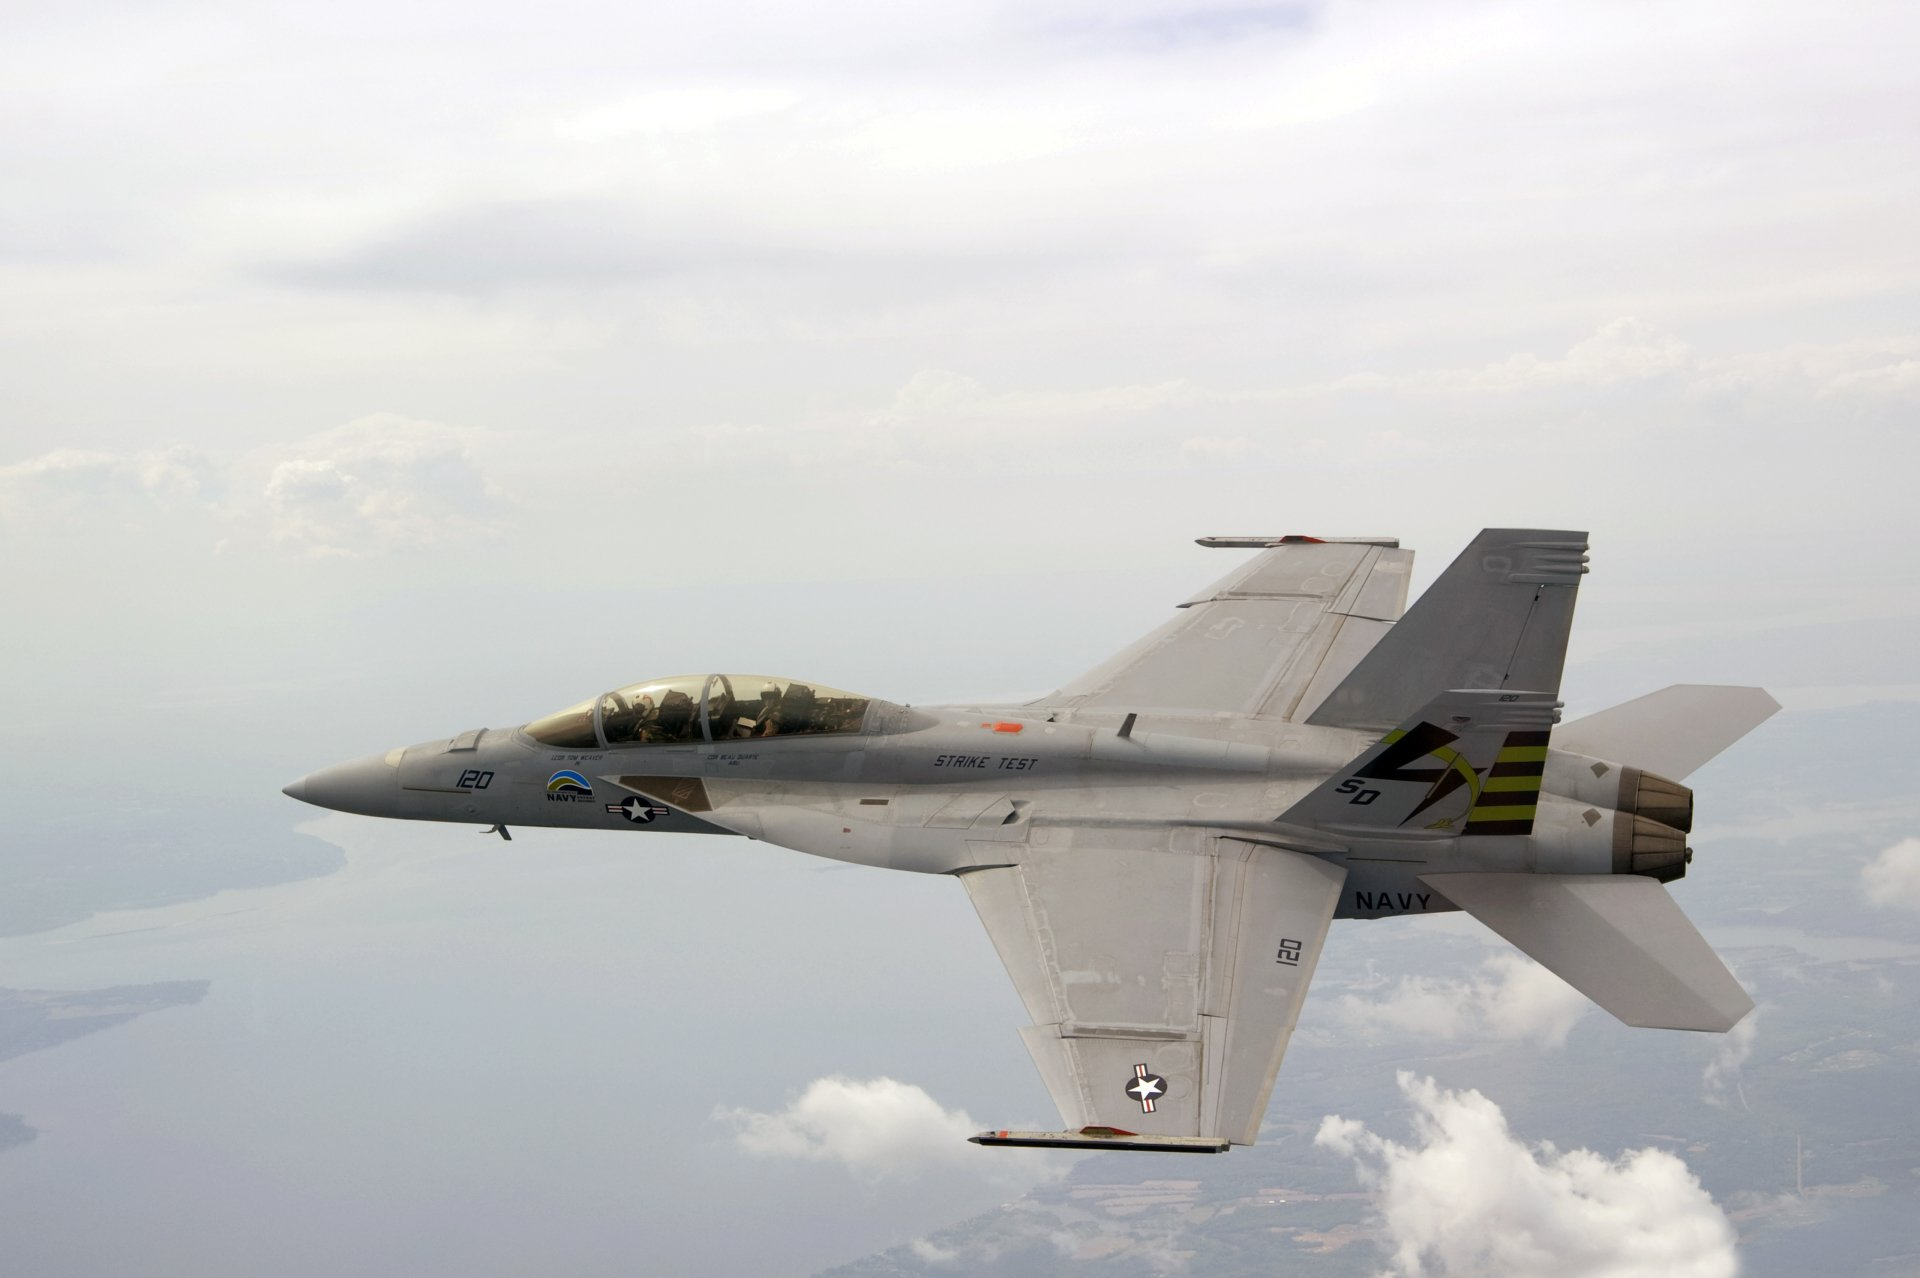 Military - Boeing F/A-18E/F Super Hornet  Military Super Hornet Aircraft Airplane Vehicle Navy McDonnell Douglas F/A-18 Hornet Wallpaper